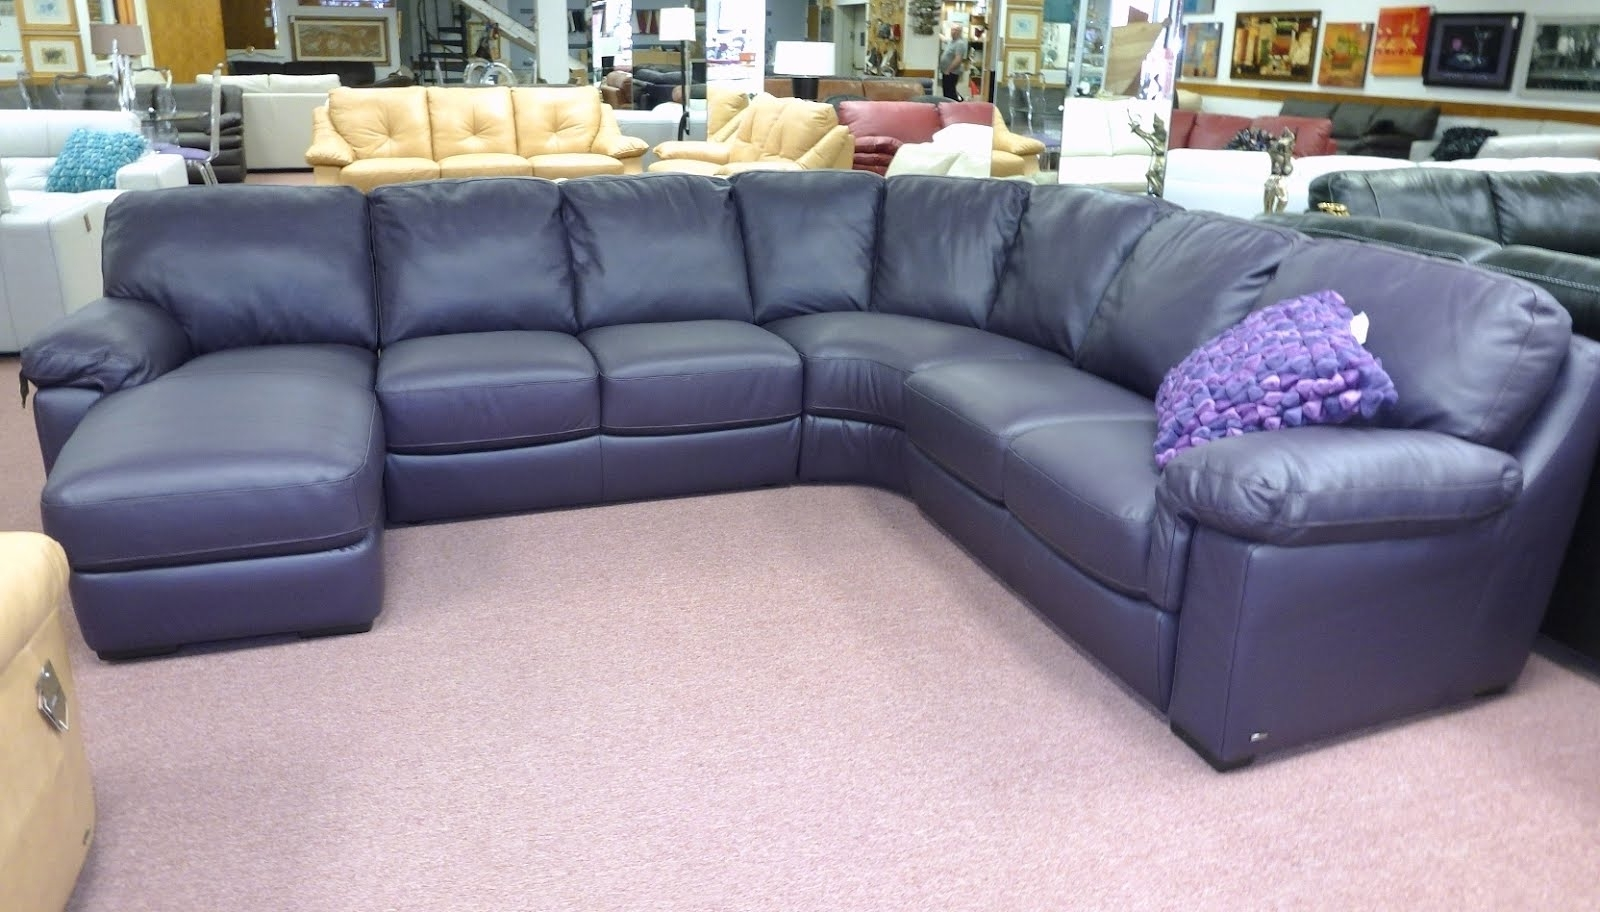 Most Recently Released Blue Sectional Sofas With Chaise Throughout Sectional Sofa Design: Amazing Navy Blue Leather Sectional Sofa (View 11 of 15)